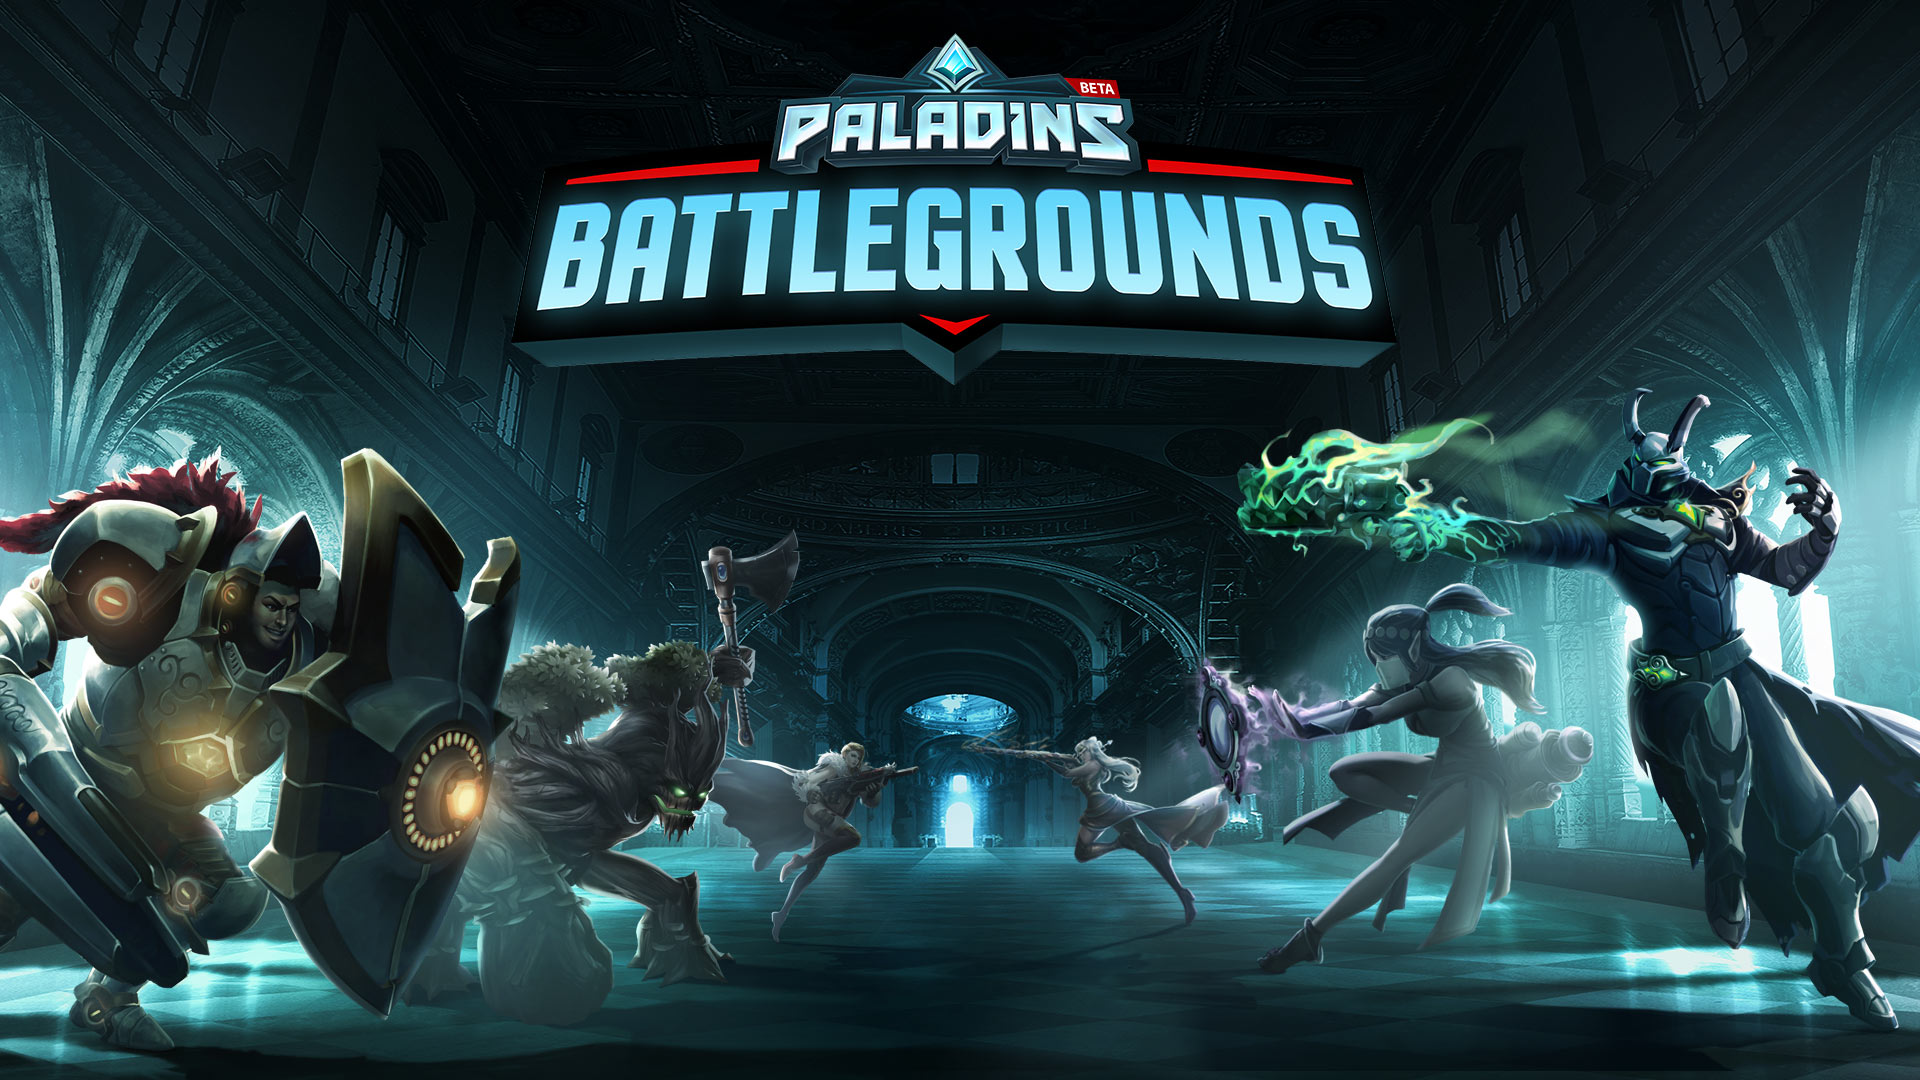 Paladins Battlegrounds Art